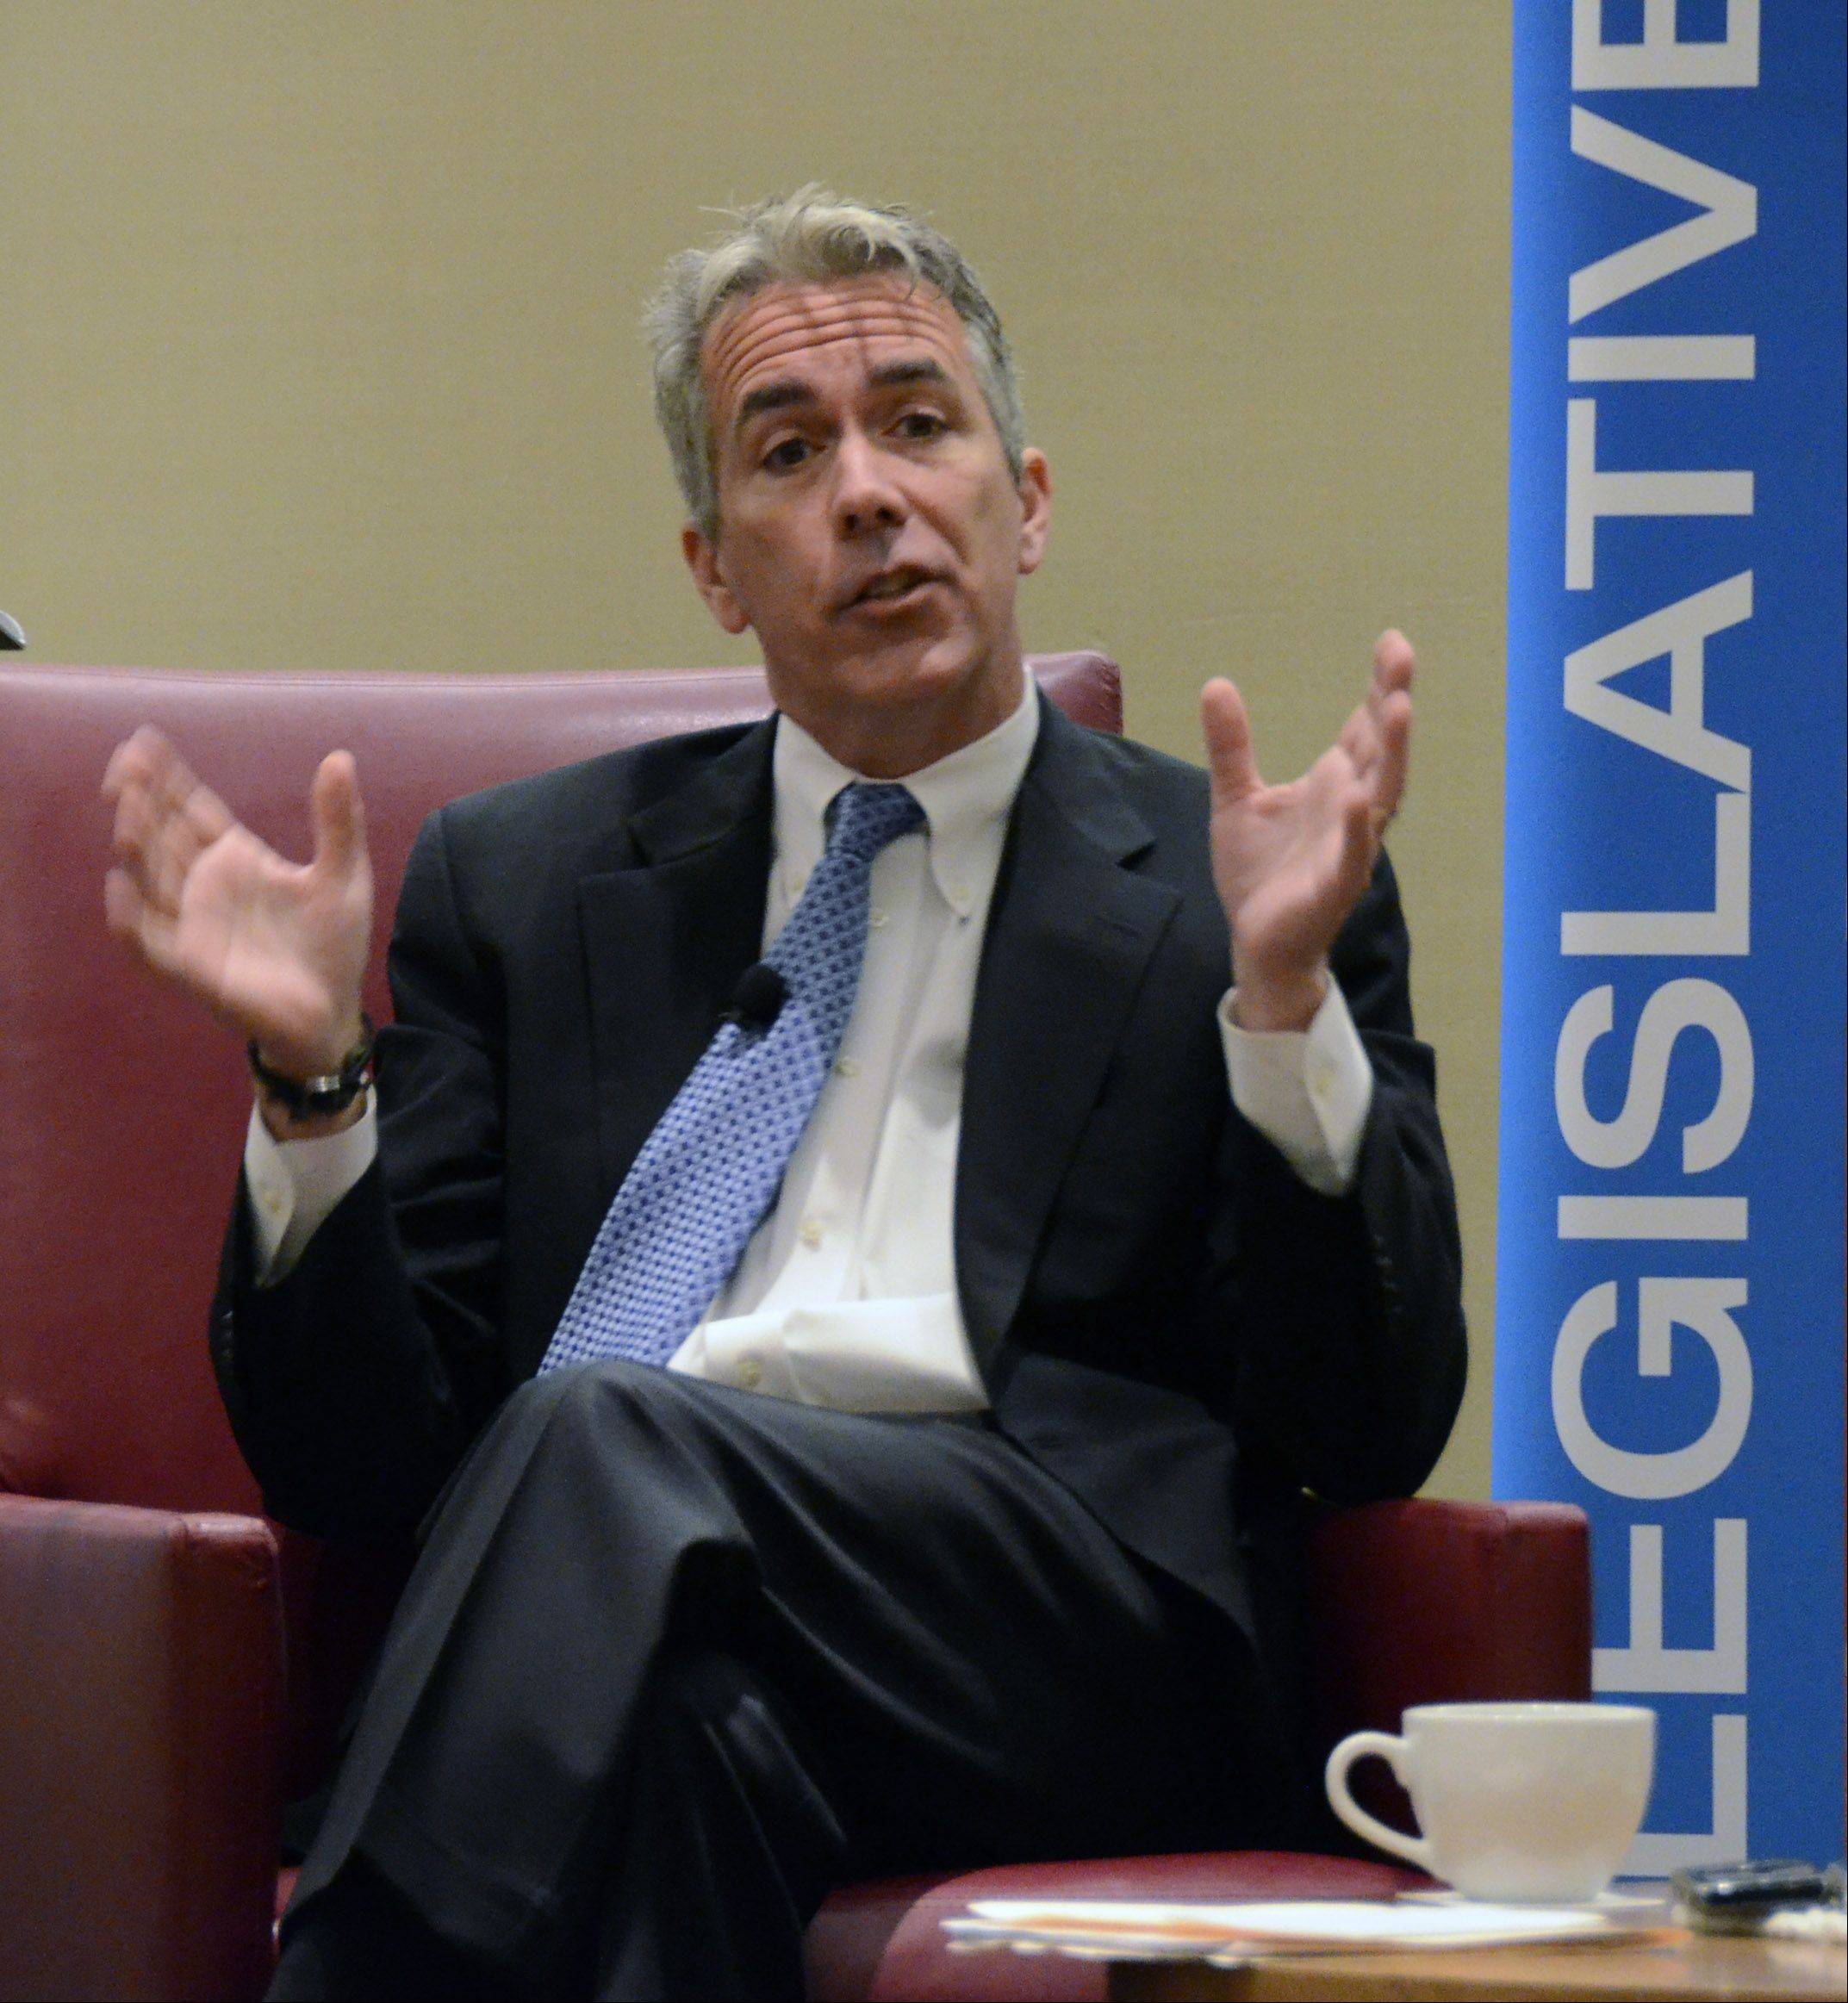 Republican Congressman Joe Walsh of McHenry talks about issues in the upcoming Nov. 6 election. He and Democratic challenger Tammy Duckworth of Hoffman Estates spoke at the Schaumburg Business Association breakfast meeting Monday in Schaumburg.